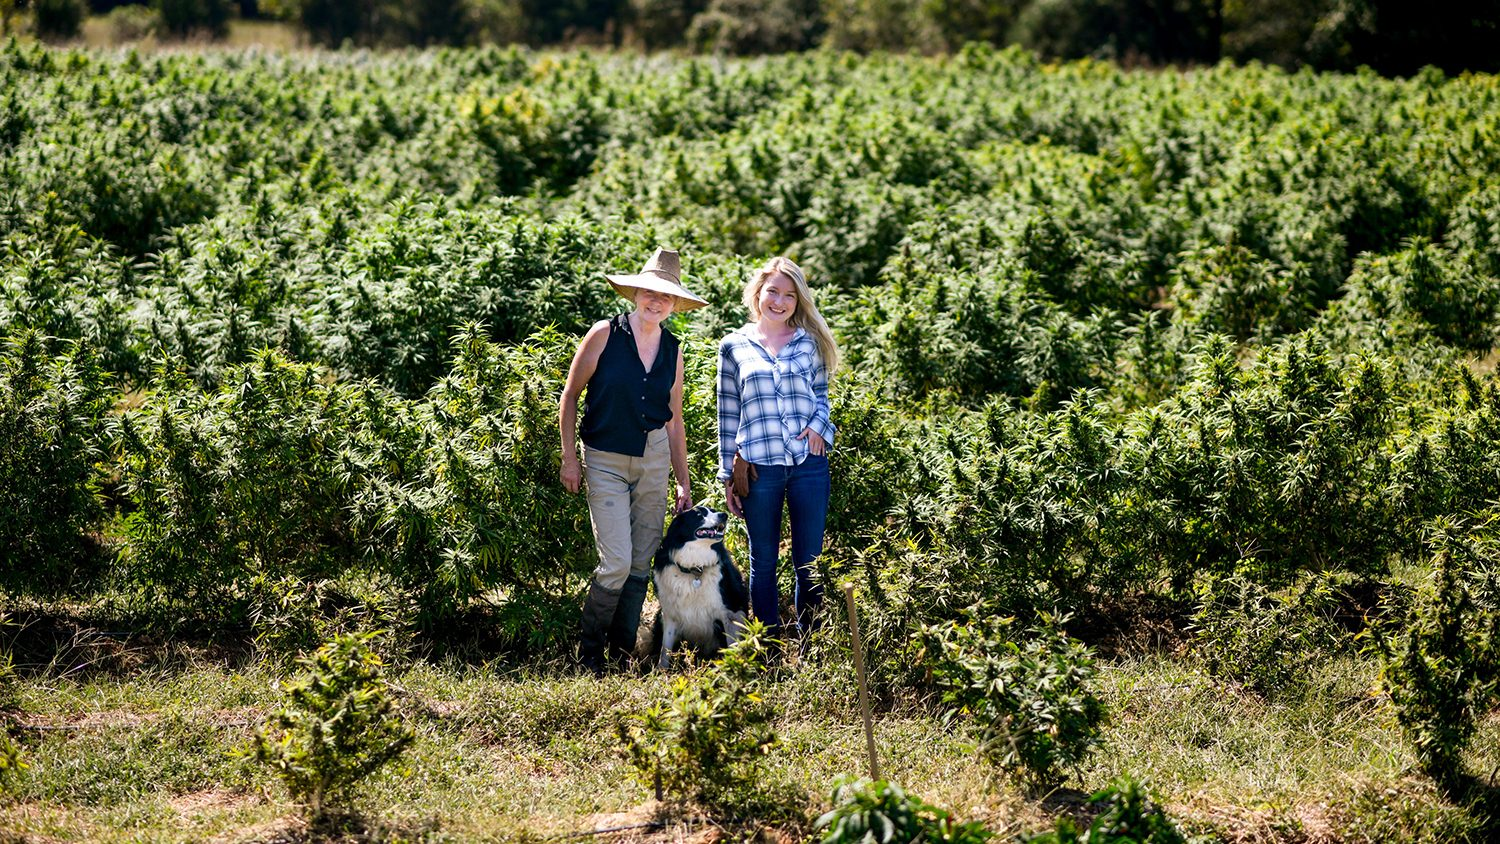 Photo of two women and a dog in a field of hemp